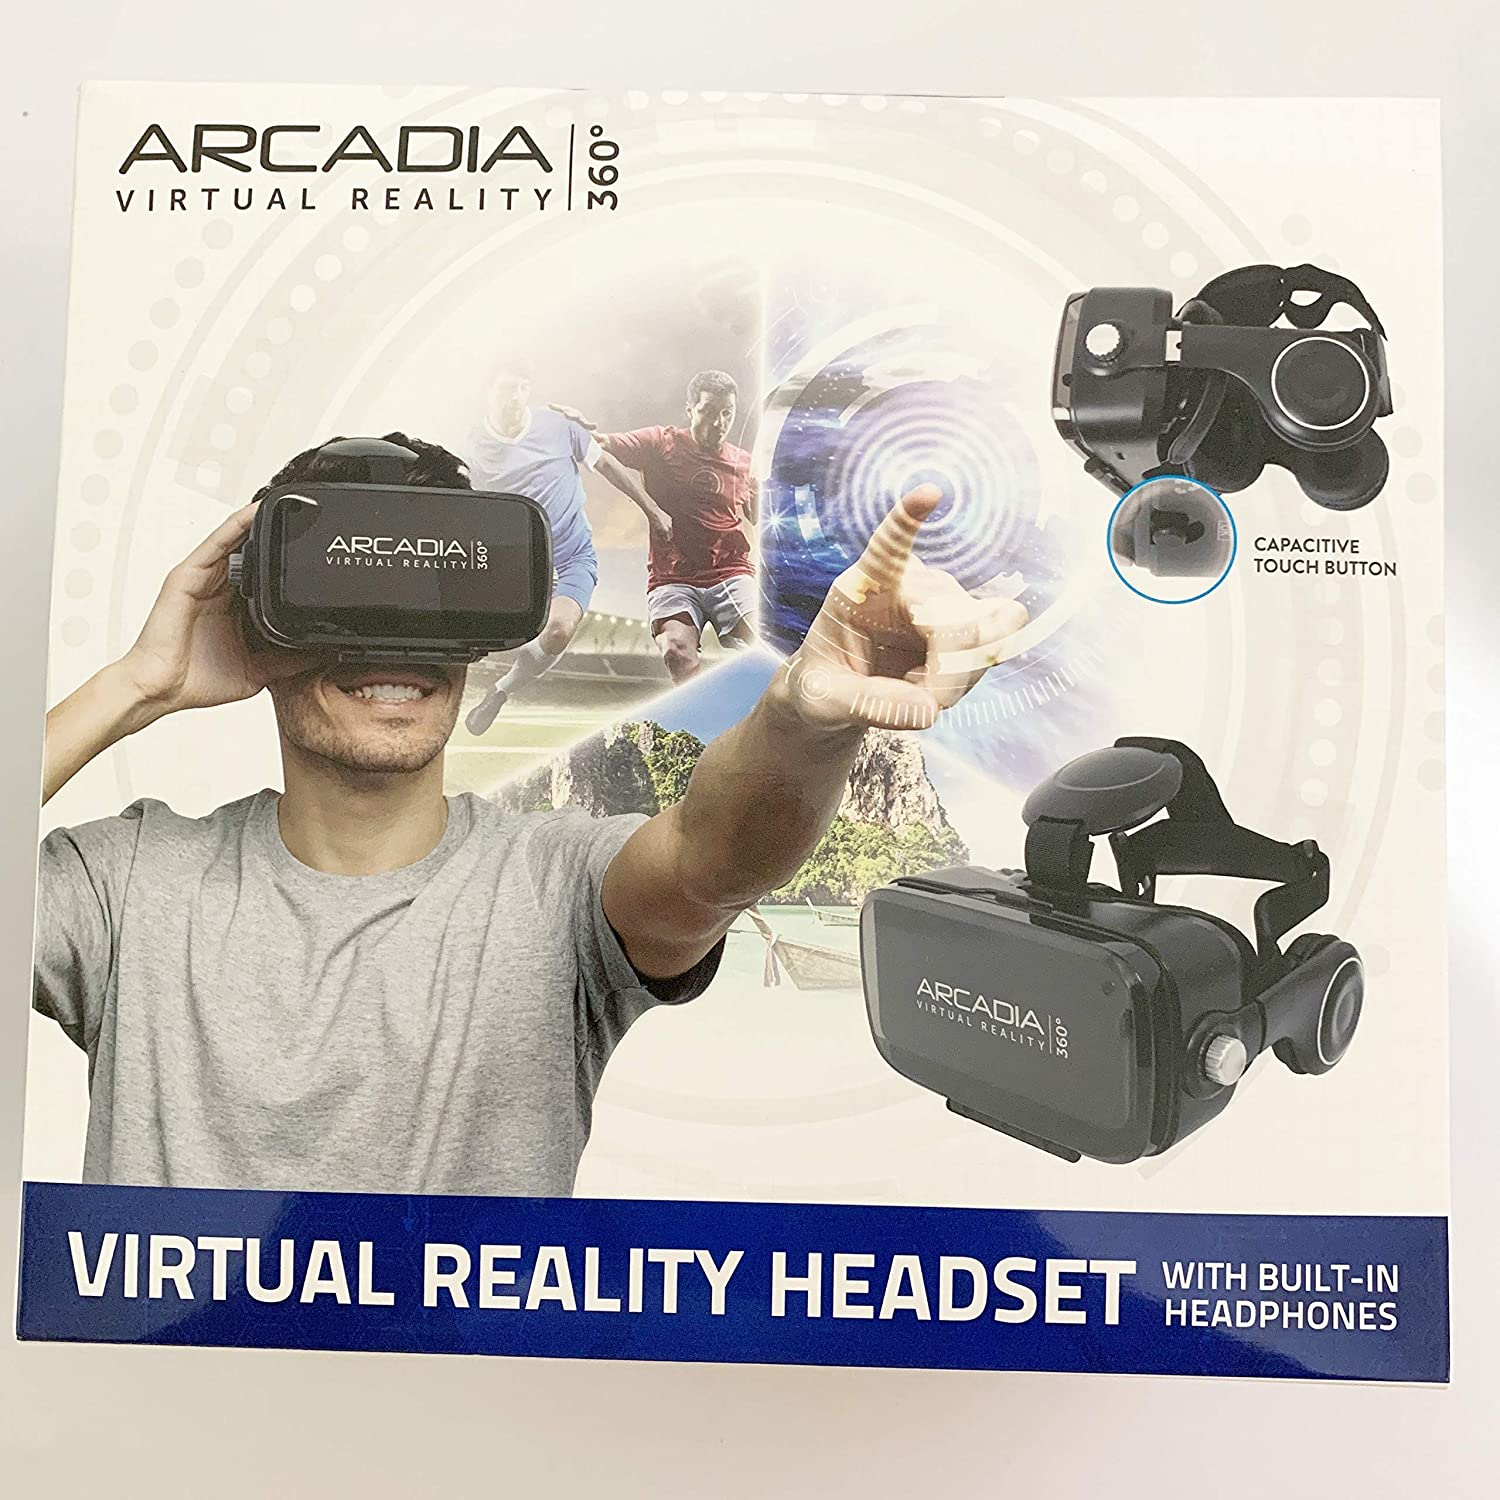 Arcadia 360 Virtual Reality Headset, VR Cell Phone Headset for Mobile Games, Movies, Travel. Compatible with Your Smartphone Device.